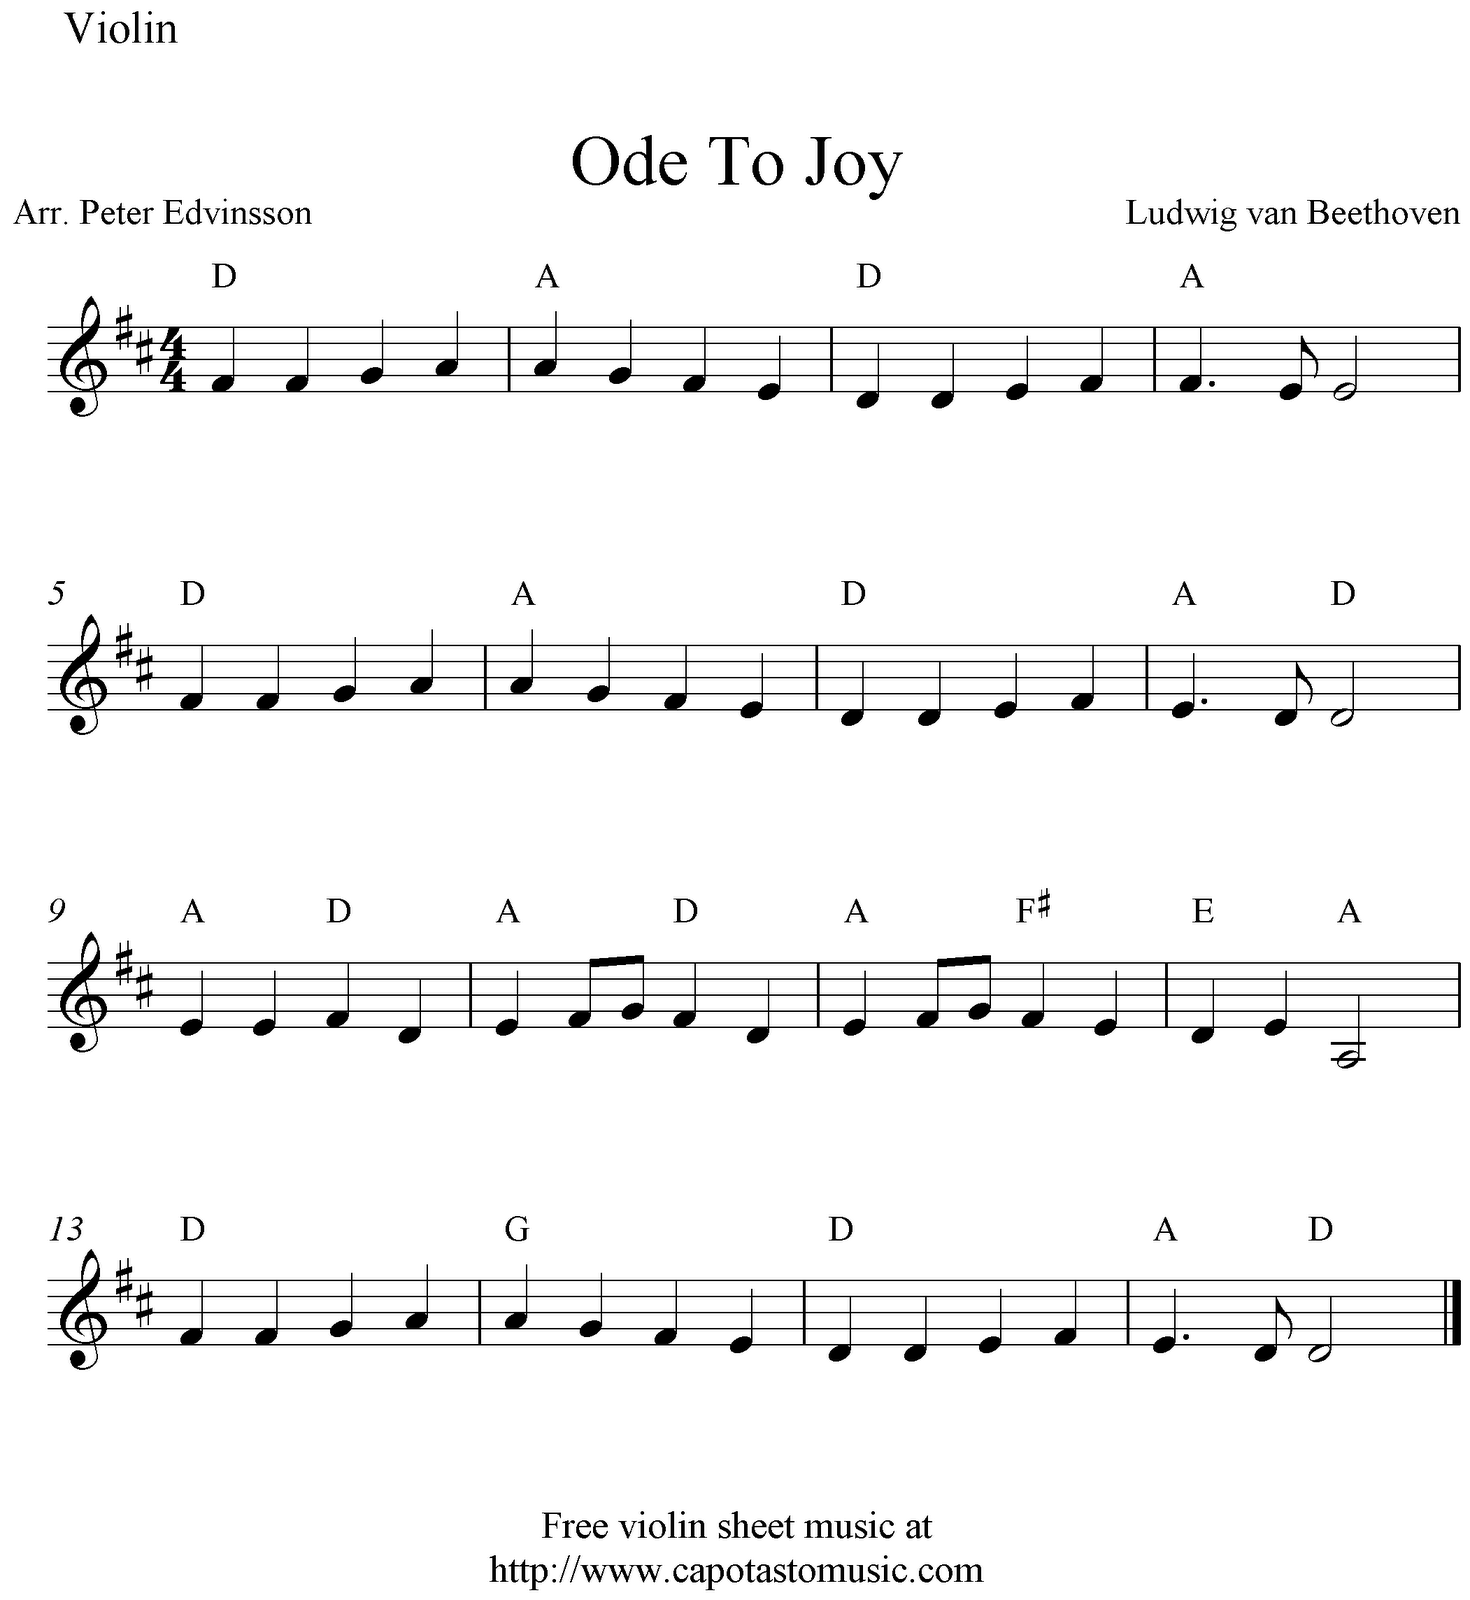 Available Free Sheet Music